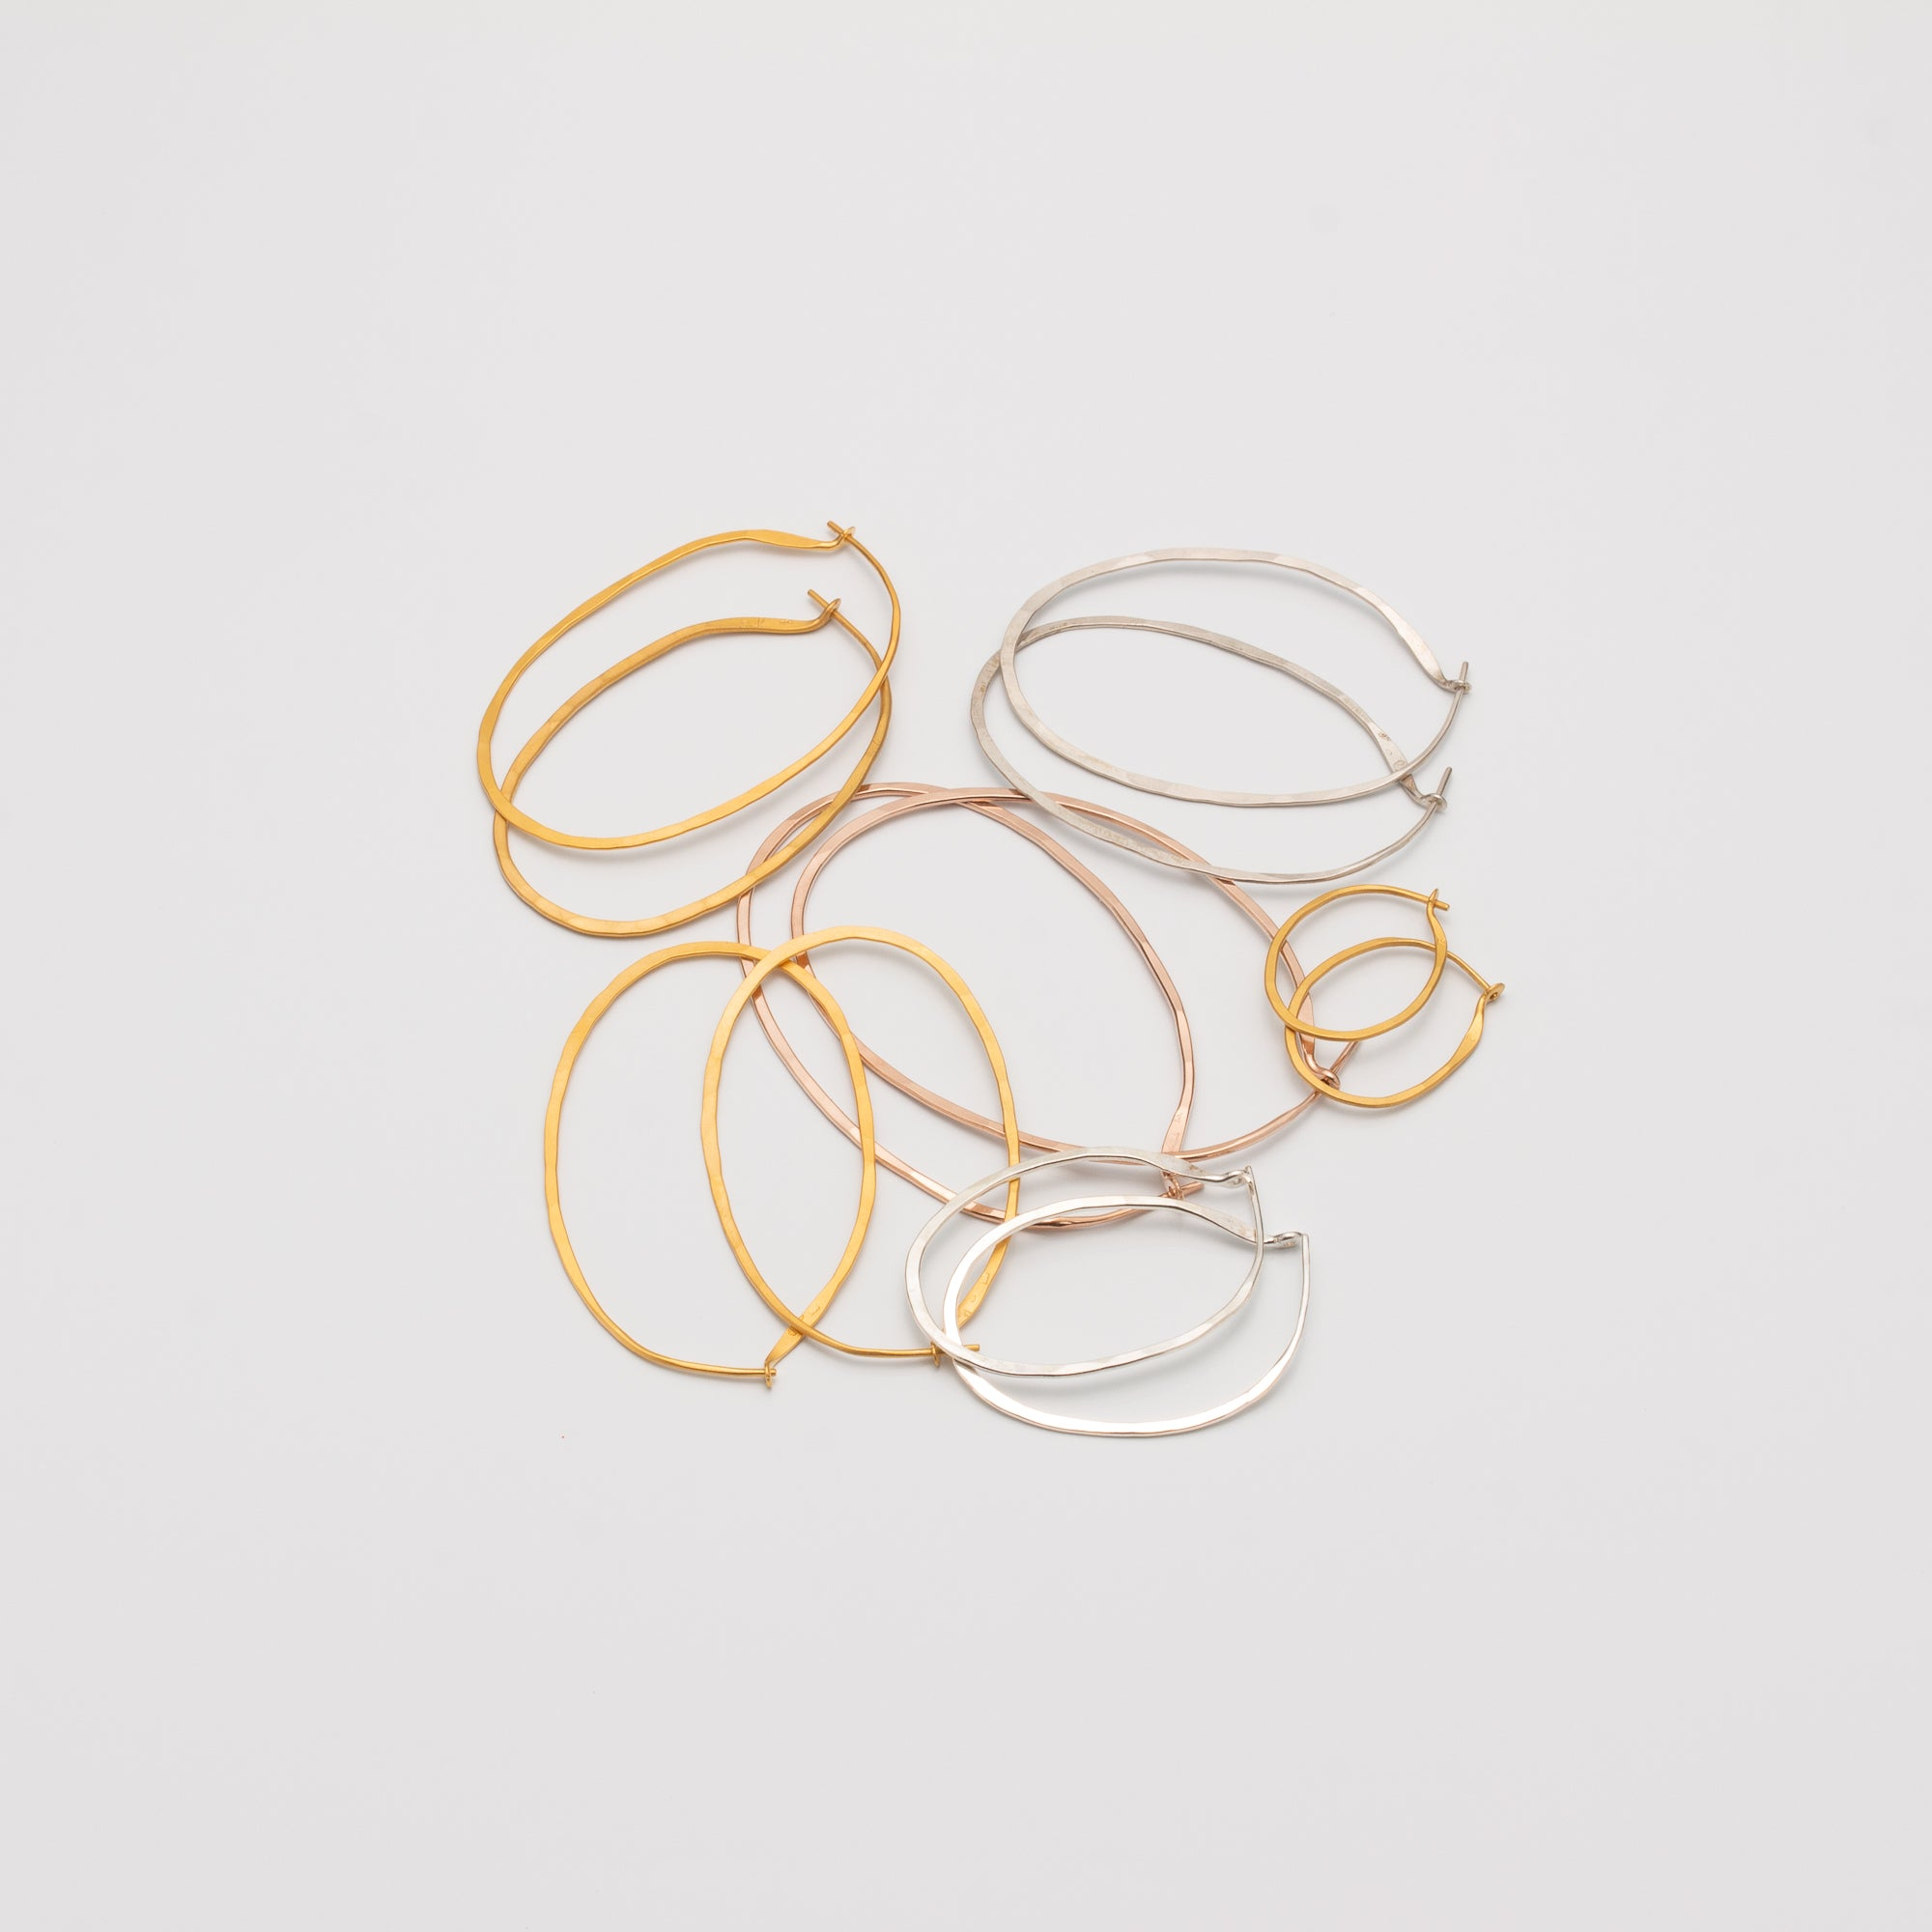 HOOPS // SMALL // OVAL // VERMEIL